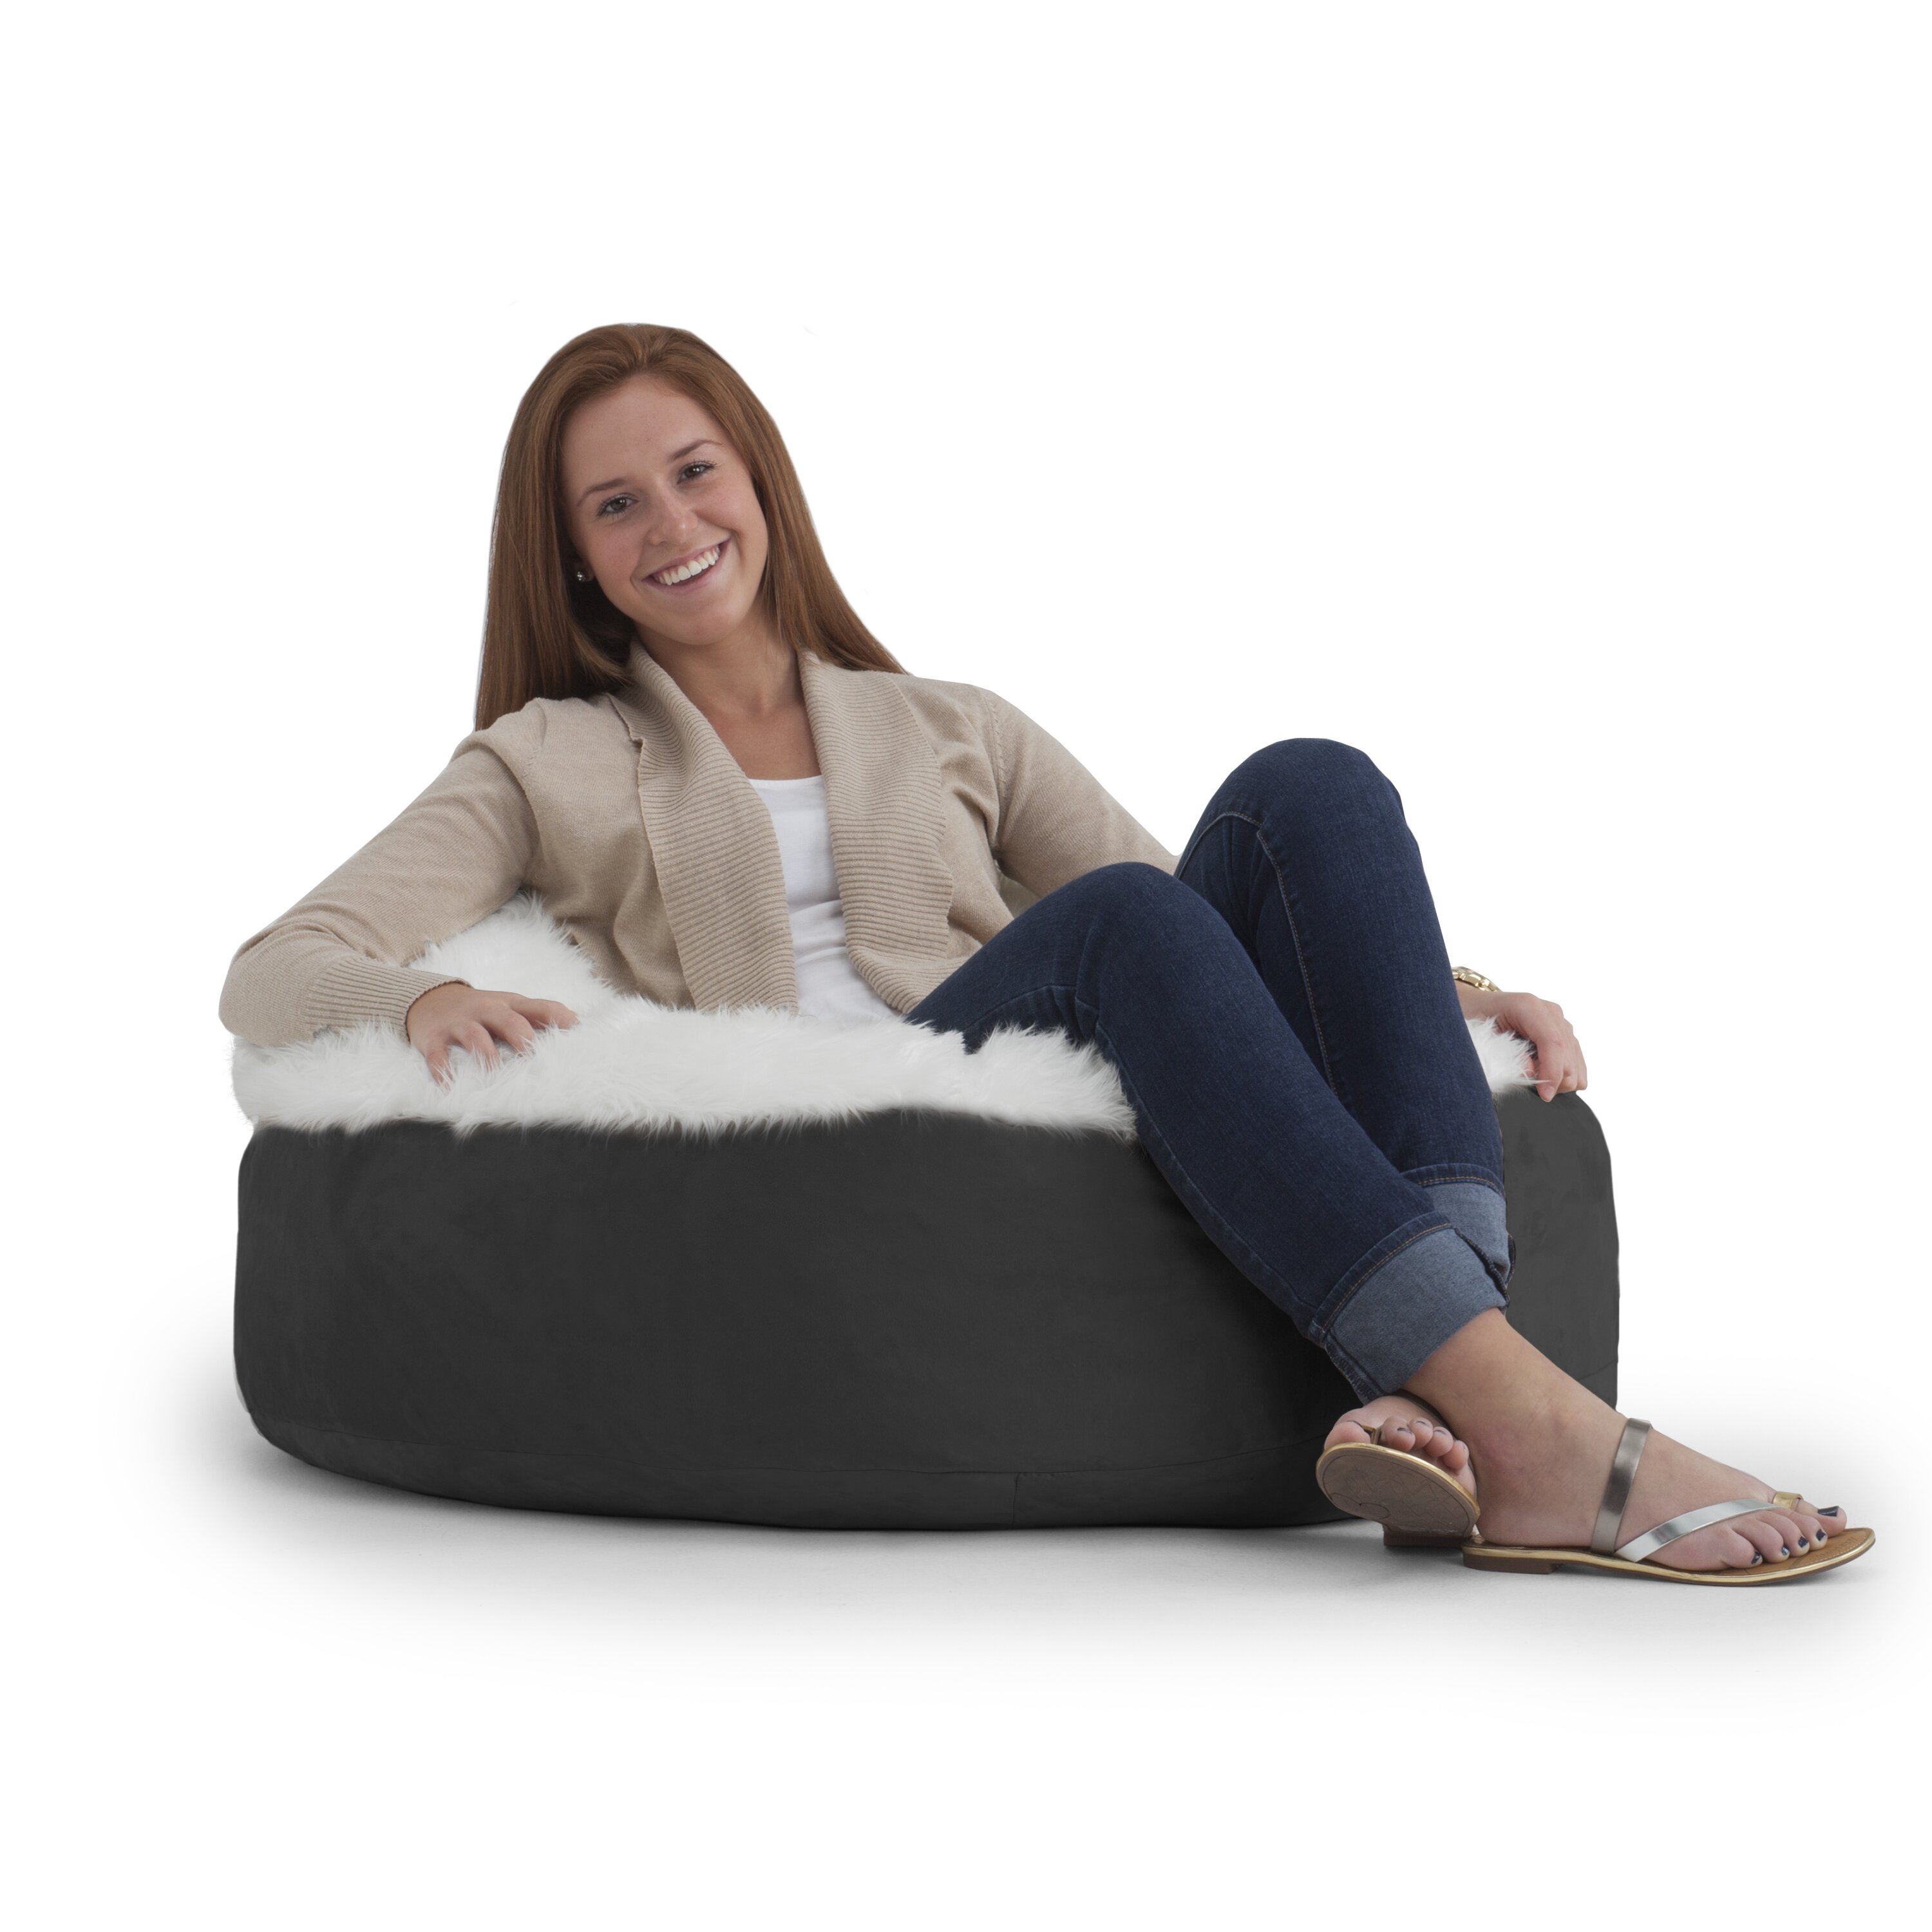 Comfort Research Big Joe Bean Bag Chair Wayfair